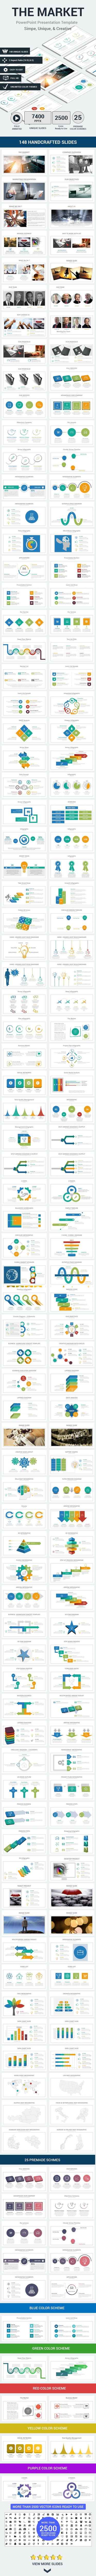 The Market PowerPoint Presentation Template. Download here: http://graphicriver.net/item/the-market-powerpoint-presentation-template/15261264?ref=ksioks